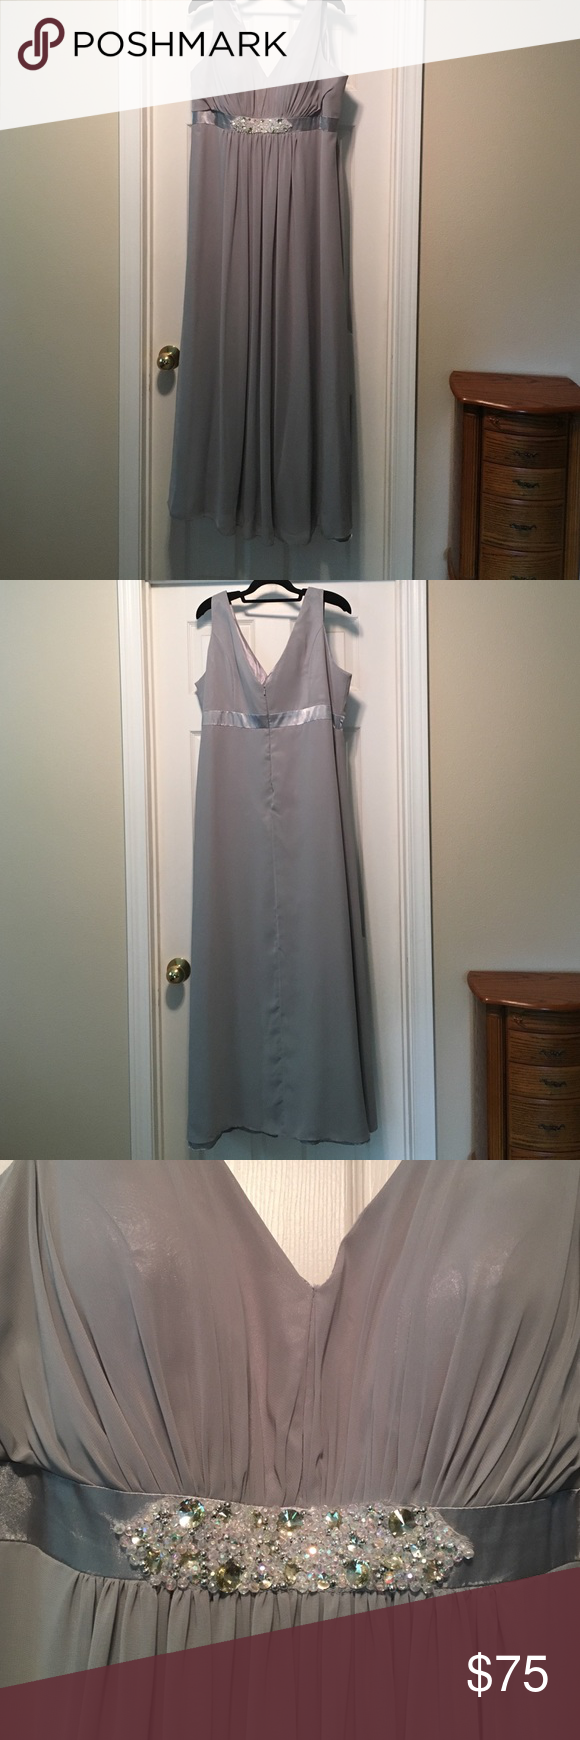 "Silver gray mother of the bride gown Beautiful chiffon over satin empire waist gown. Jewel trim under the bust. Built in bra. Worn once at my daughter's wedding. Has been professionally cleaned. I am 5'6"" and it touched the top of my sandals. Hay Queen Dresses Prom"